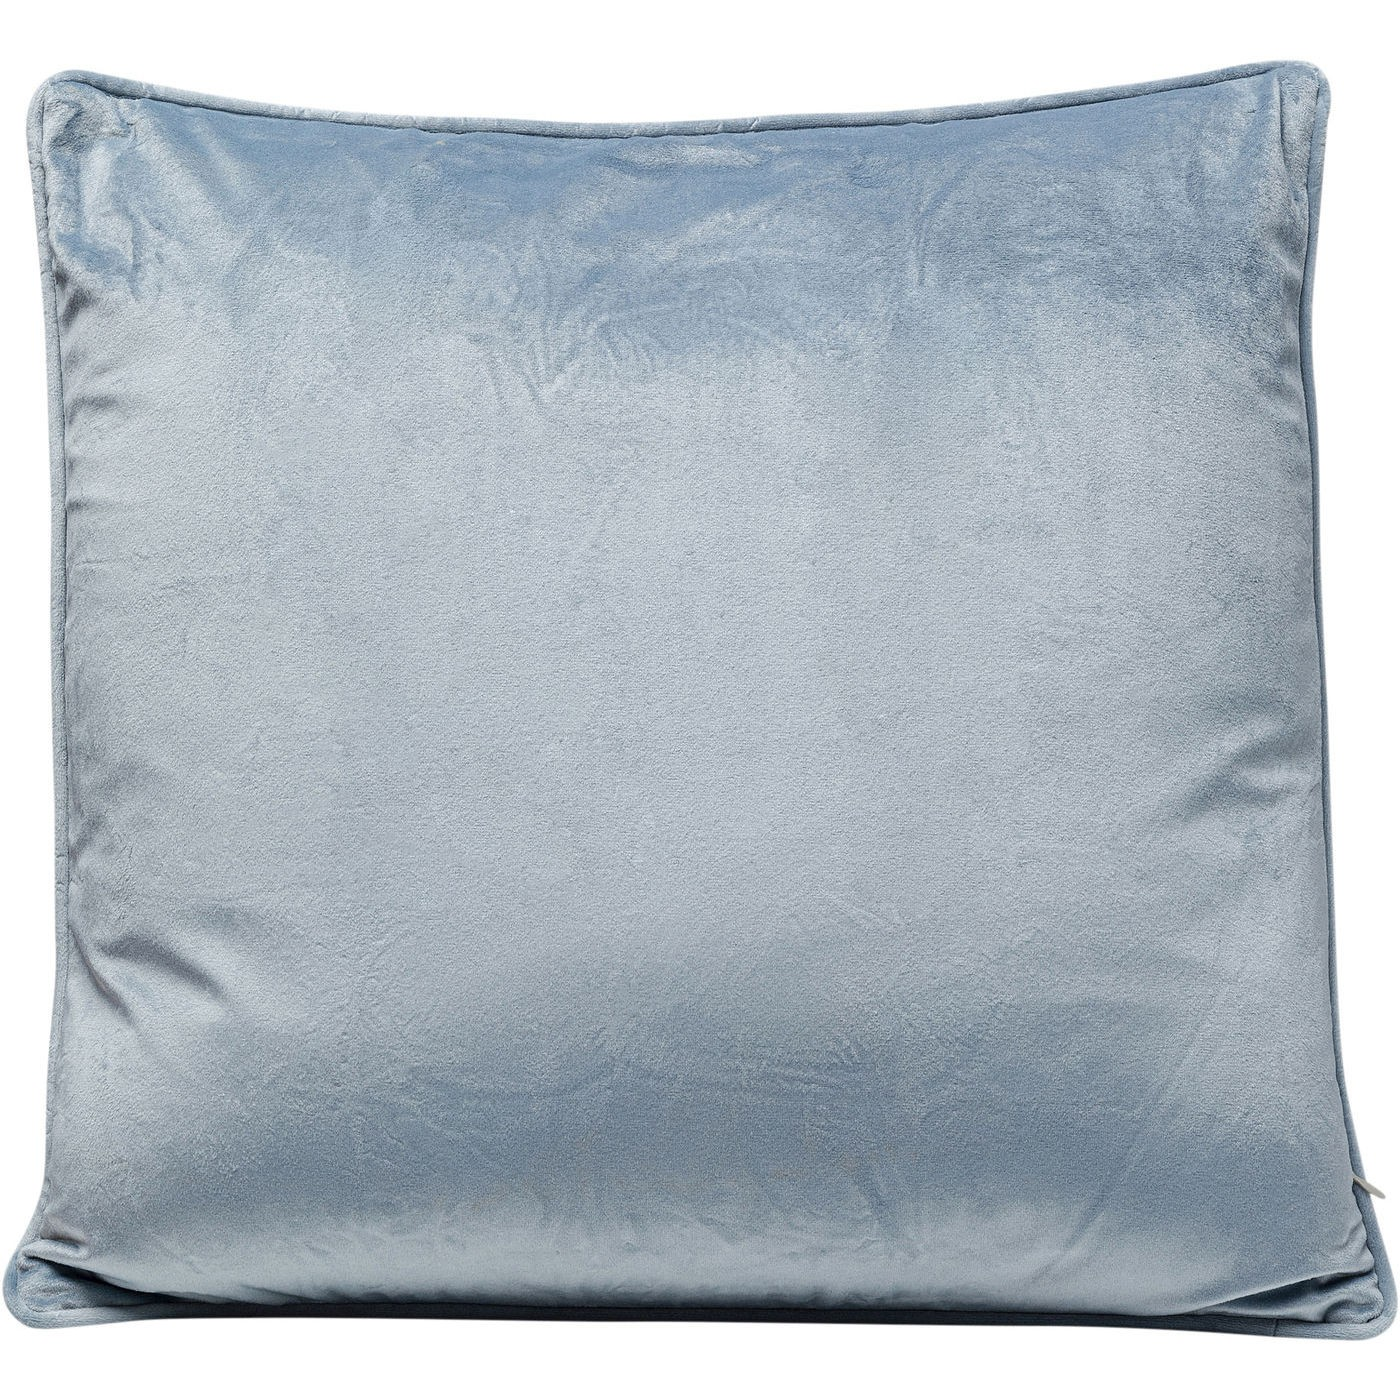 Coussin ours blancs 45x45cm Kare Design